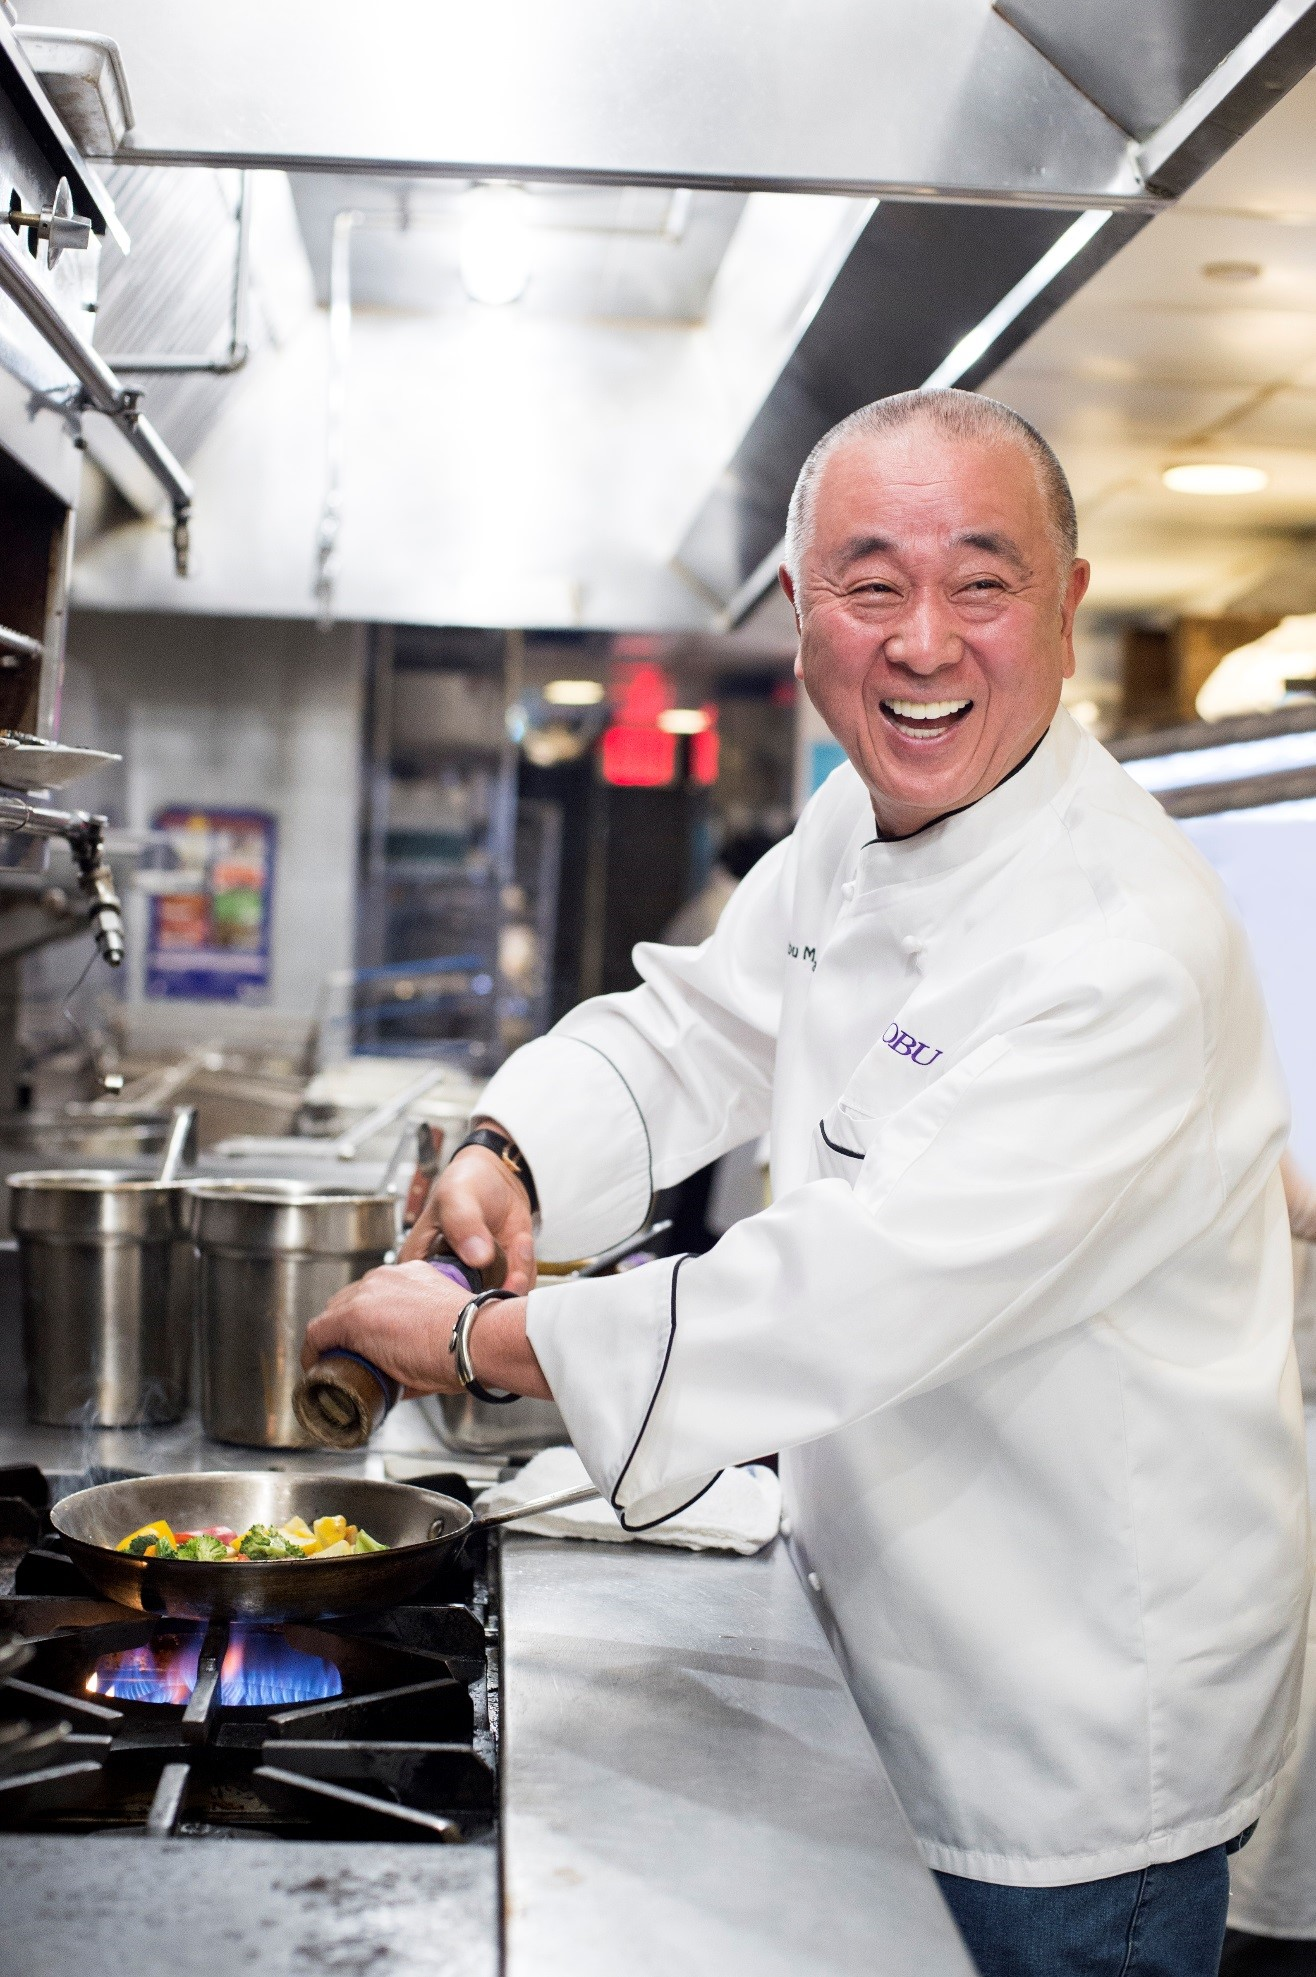 Chef Nobu in Tokyo  Chef Nobu's schedule for Tokyo has unfortunately been postponed until further notice due to the current travel restrictions.       松久来日予定  松久の来日スケジュールは現在の渡航規制により延期させていただいております。 予定が決まり次第改めてご案内いたします。